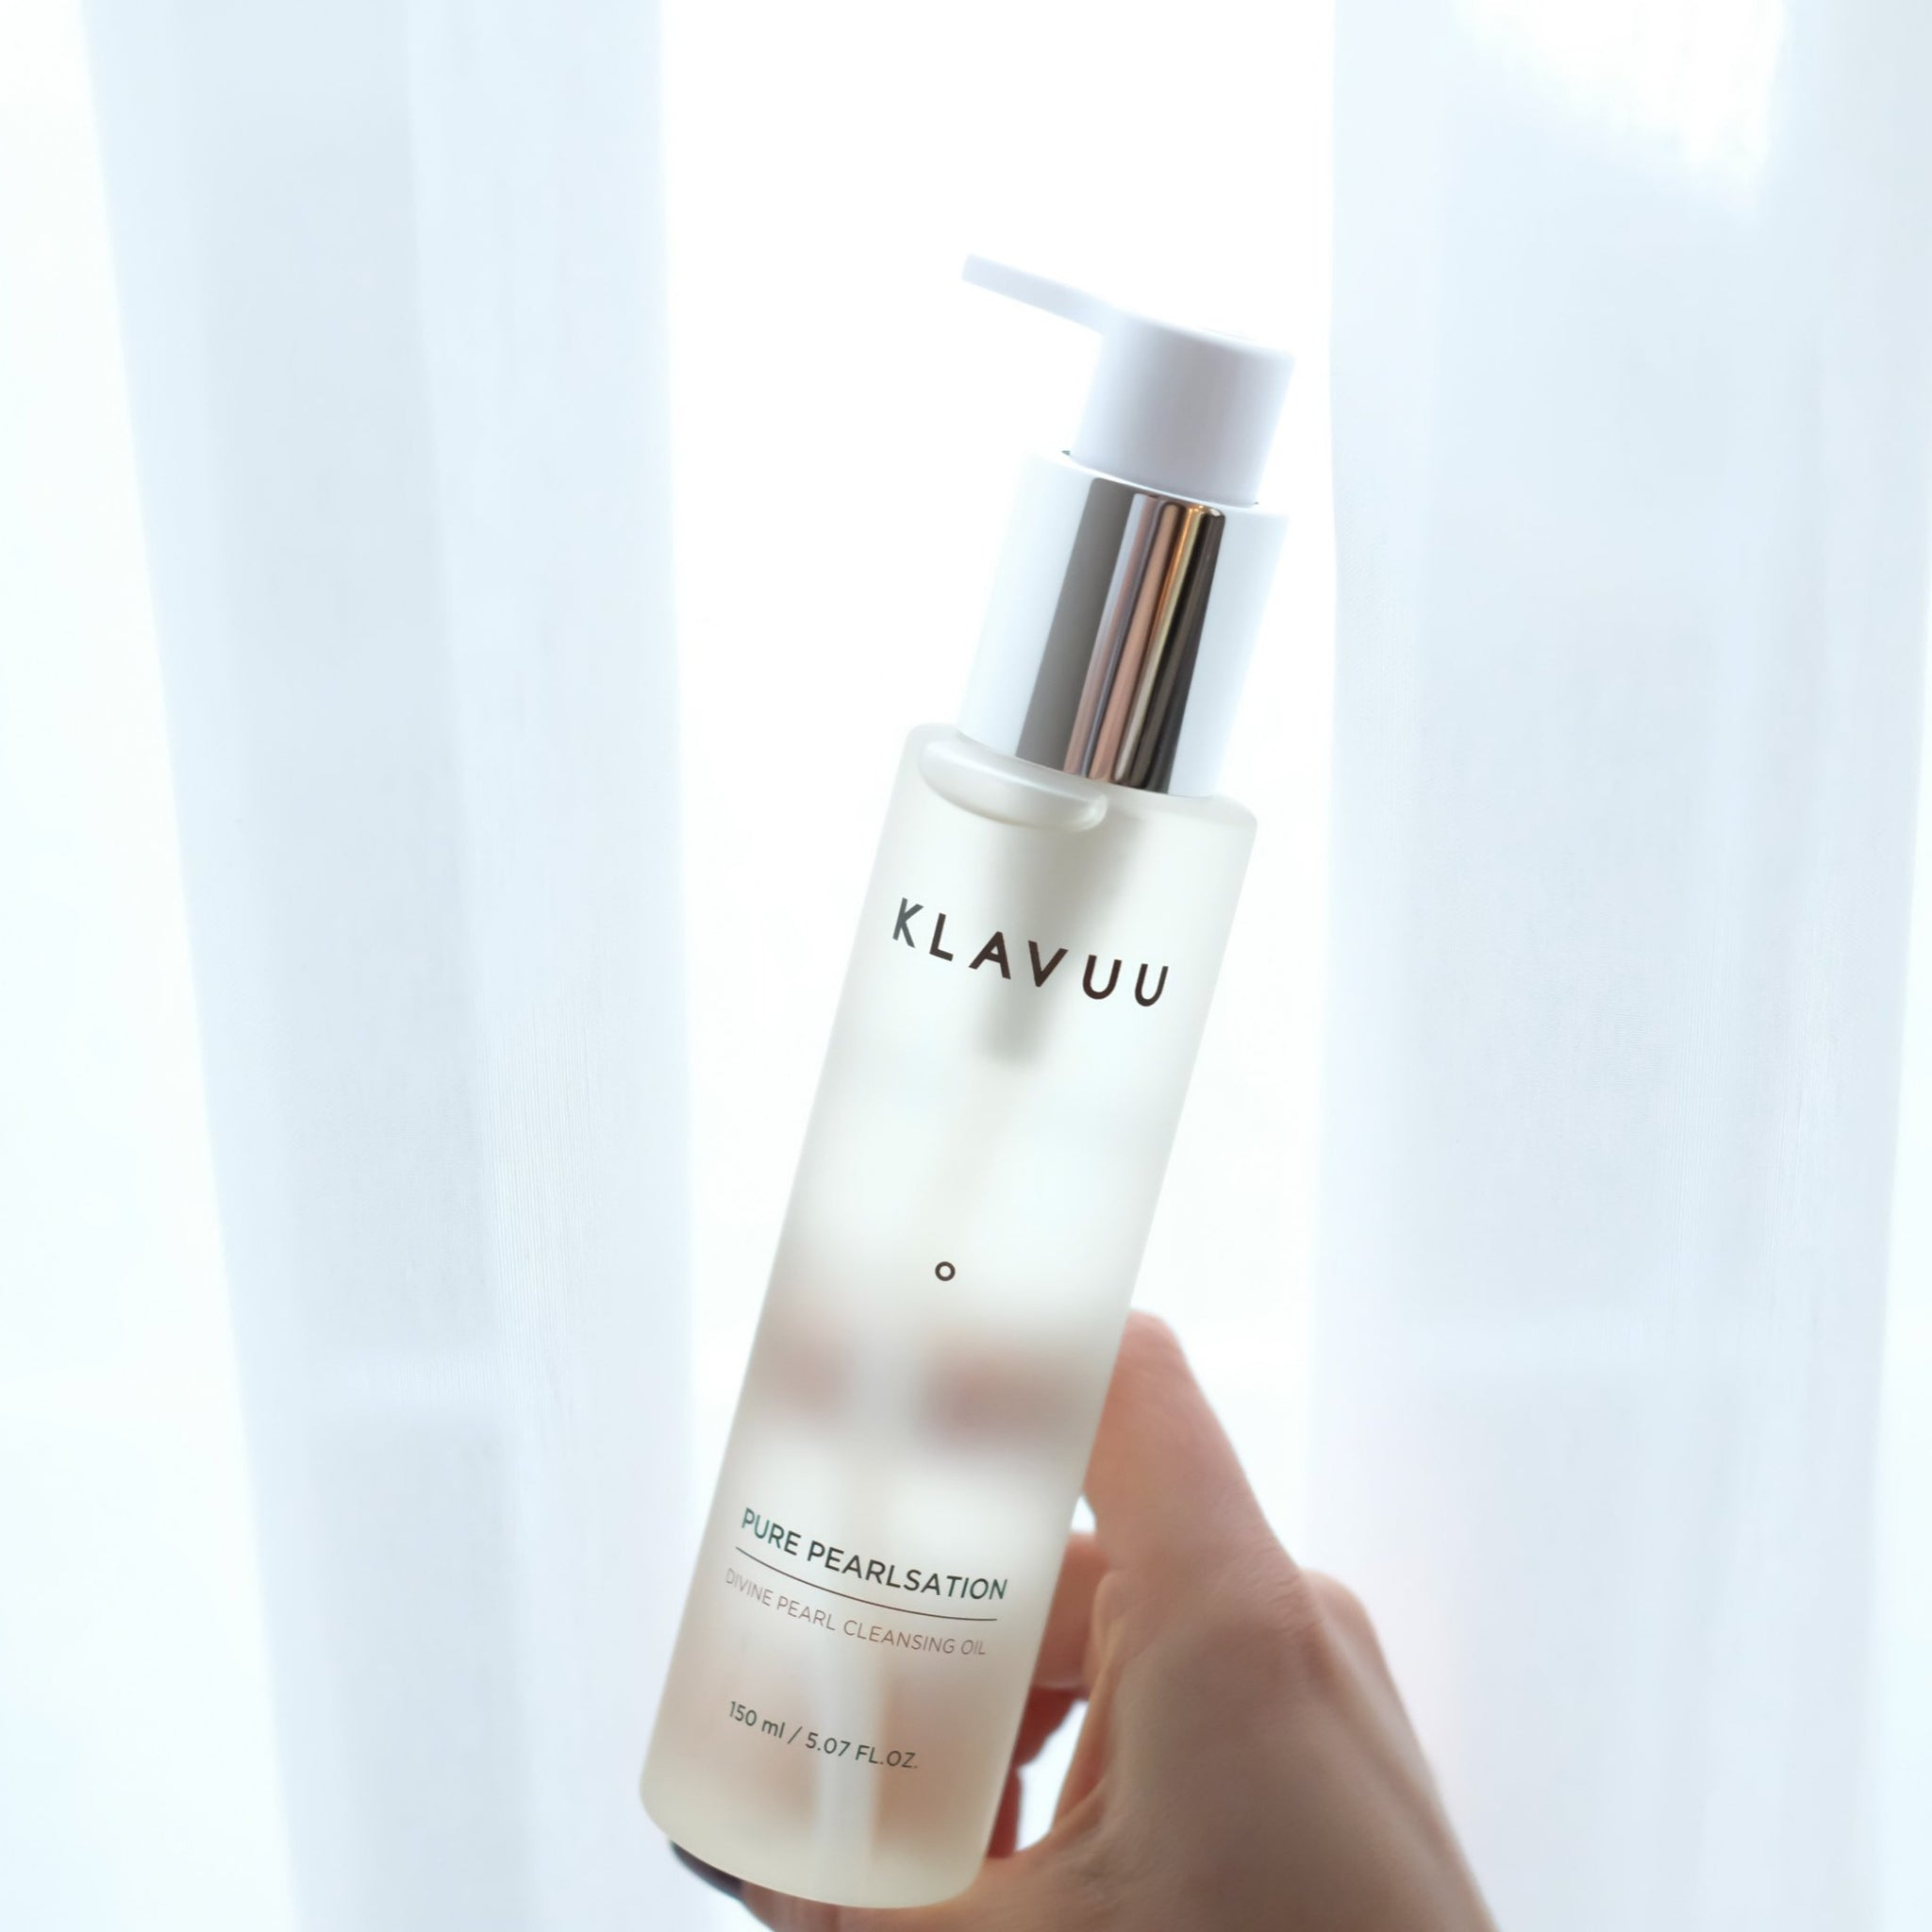 Klavuu-Pure-Pearlsation-Divine-Pearl-Cleansing-Oil